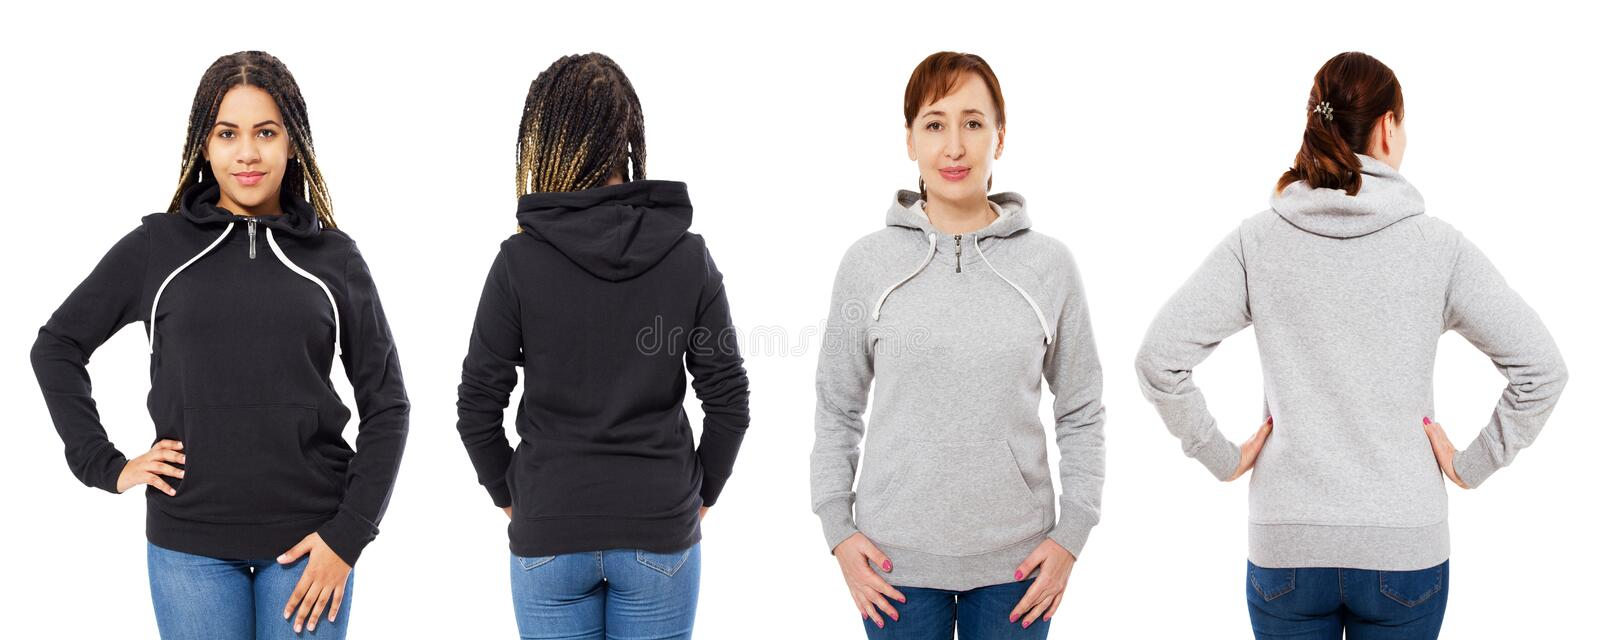 Stylish afro american girl in black hoodie mock up, beautiful woman in grey hood set front and back view, sweatshirt isolated royalty free stock photography